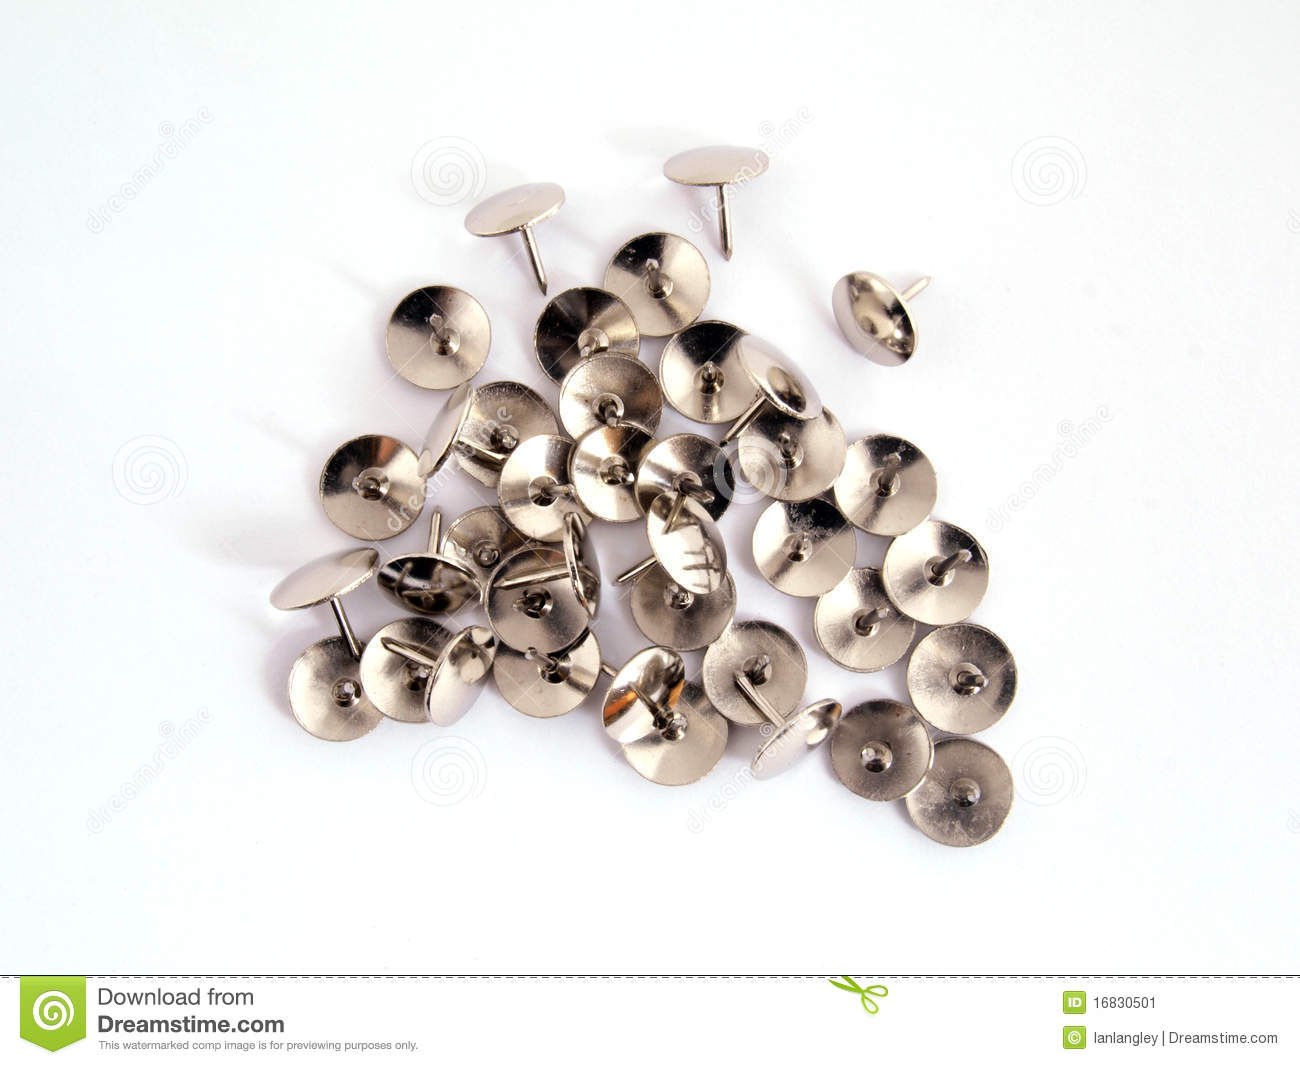 thumb tack or drawing pin stock image image of staple 16830501